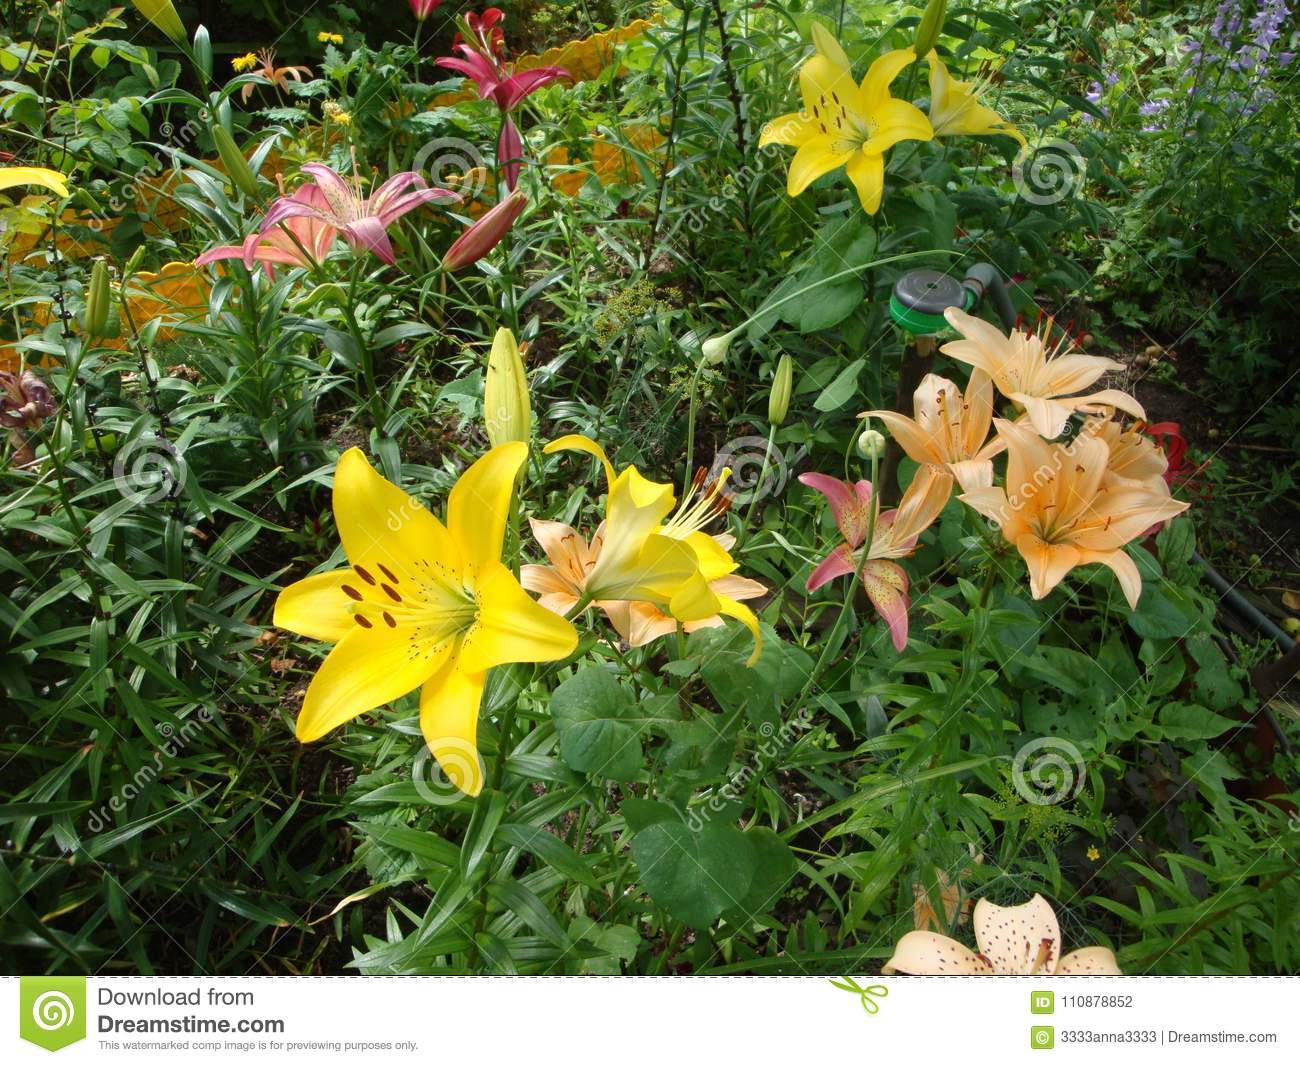 Glade with lilies of different colors stock photo image of download glade with lilies of different colors stock photo image of flowers color izmirmasajfo